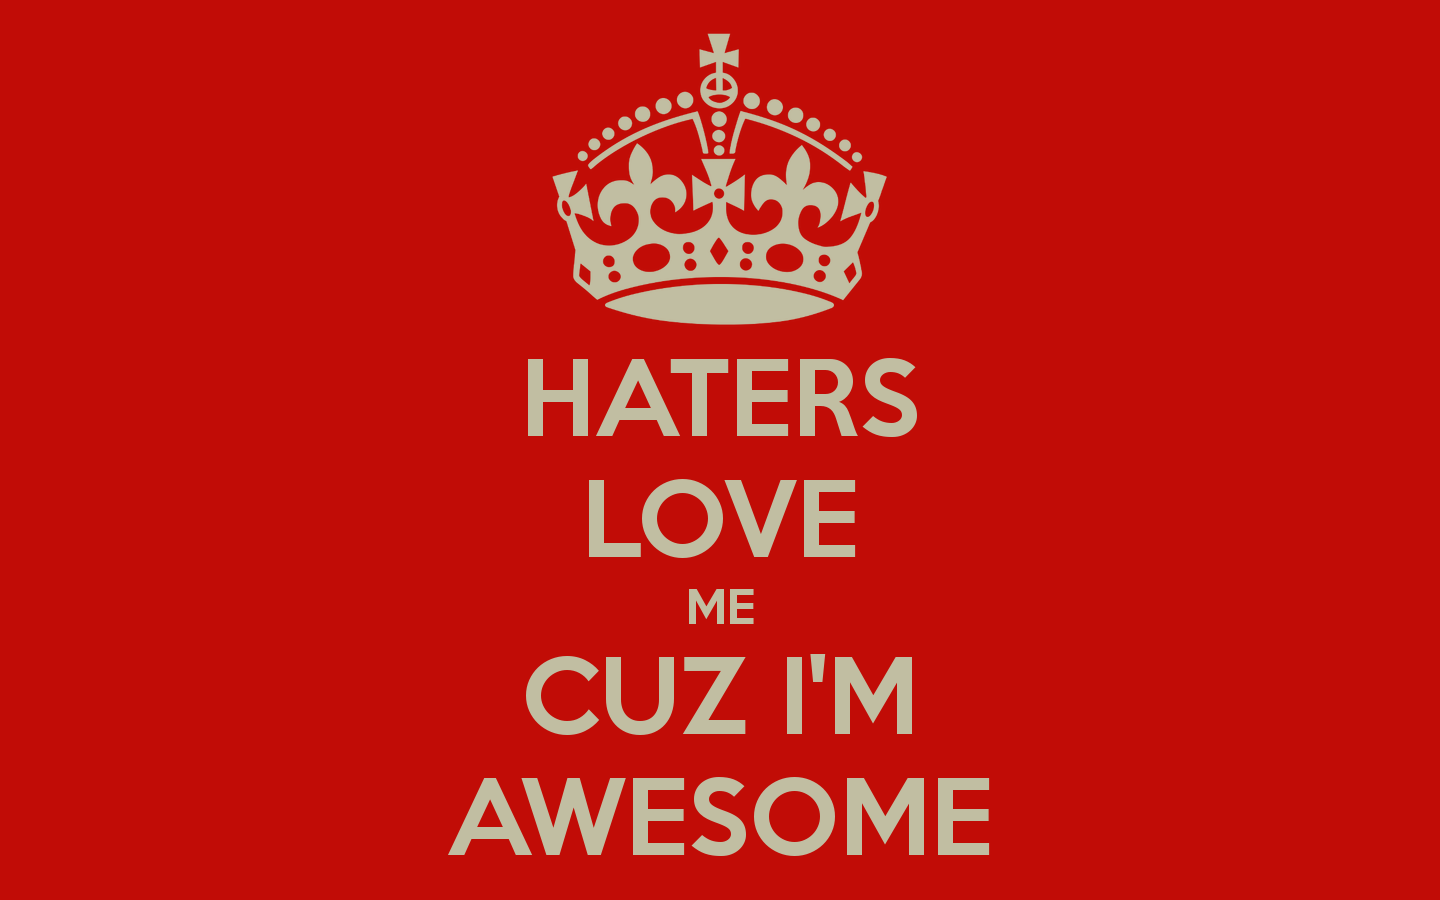 am awesome wallpaper - photo #3